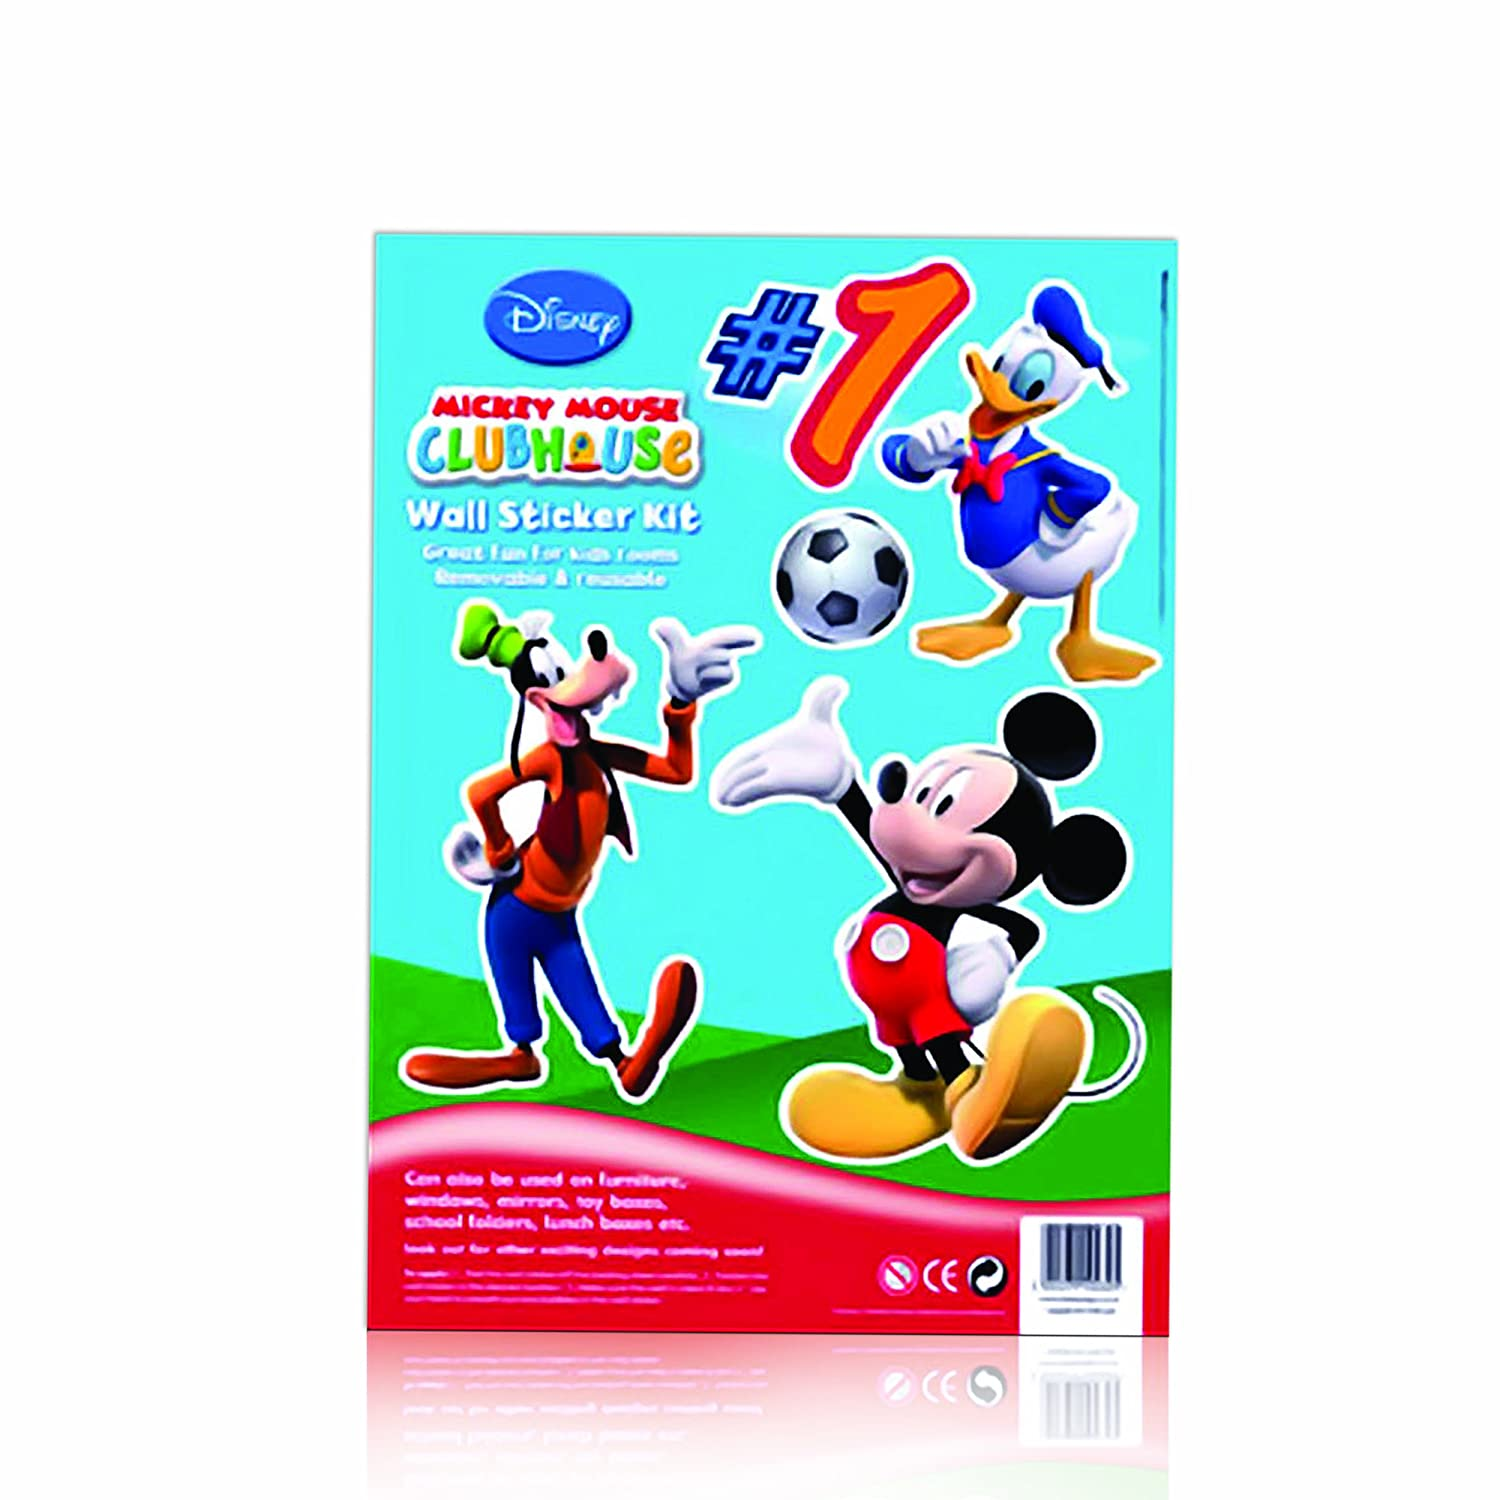 Wonderful Disney Mickey Mouse Clubhouse Wall Stickers: Amazon.co.uk: Toys U0026 Games Part 25